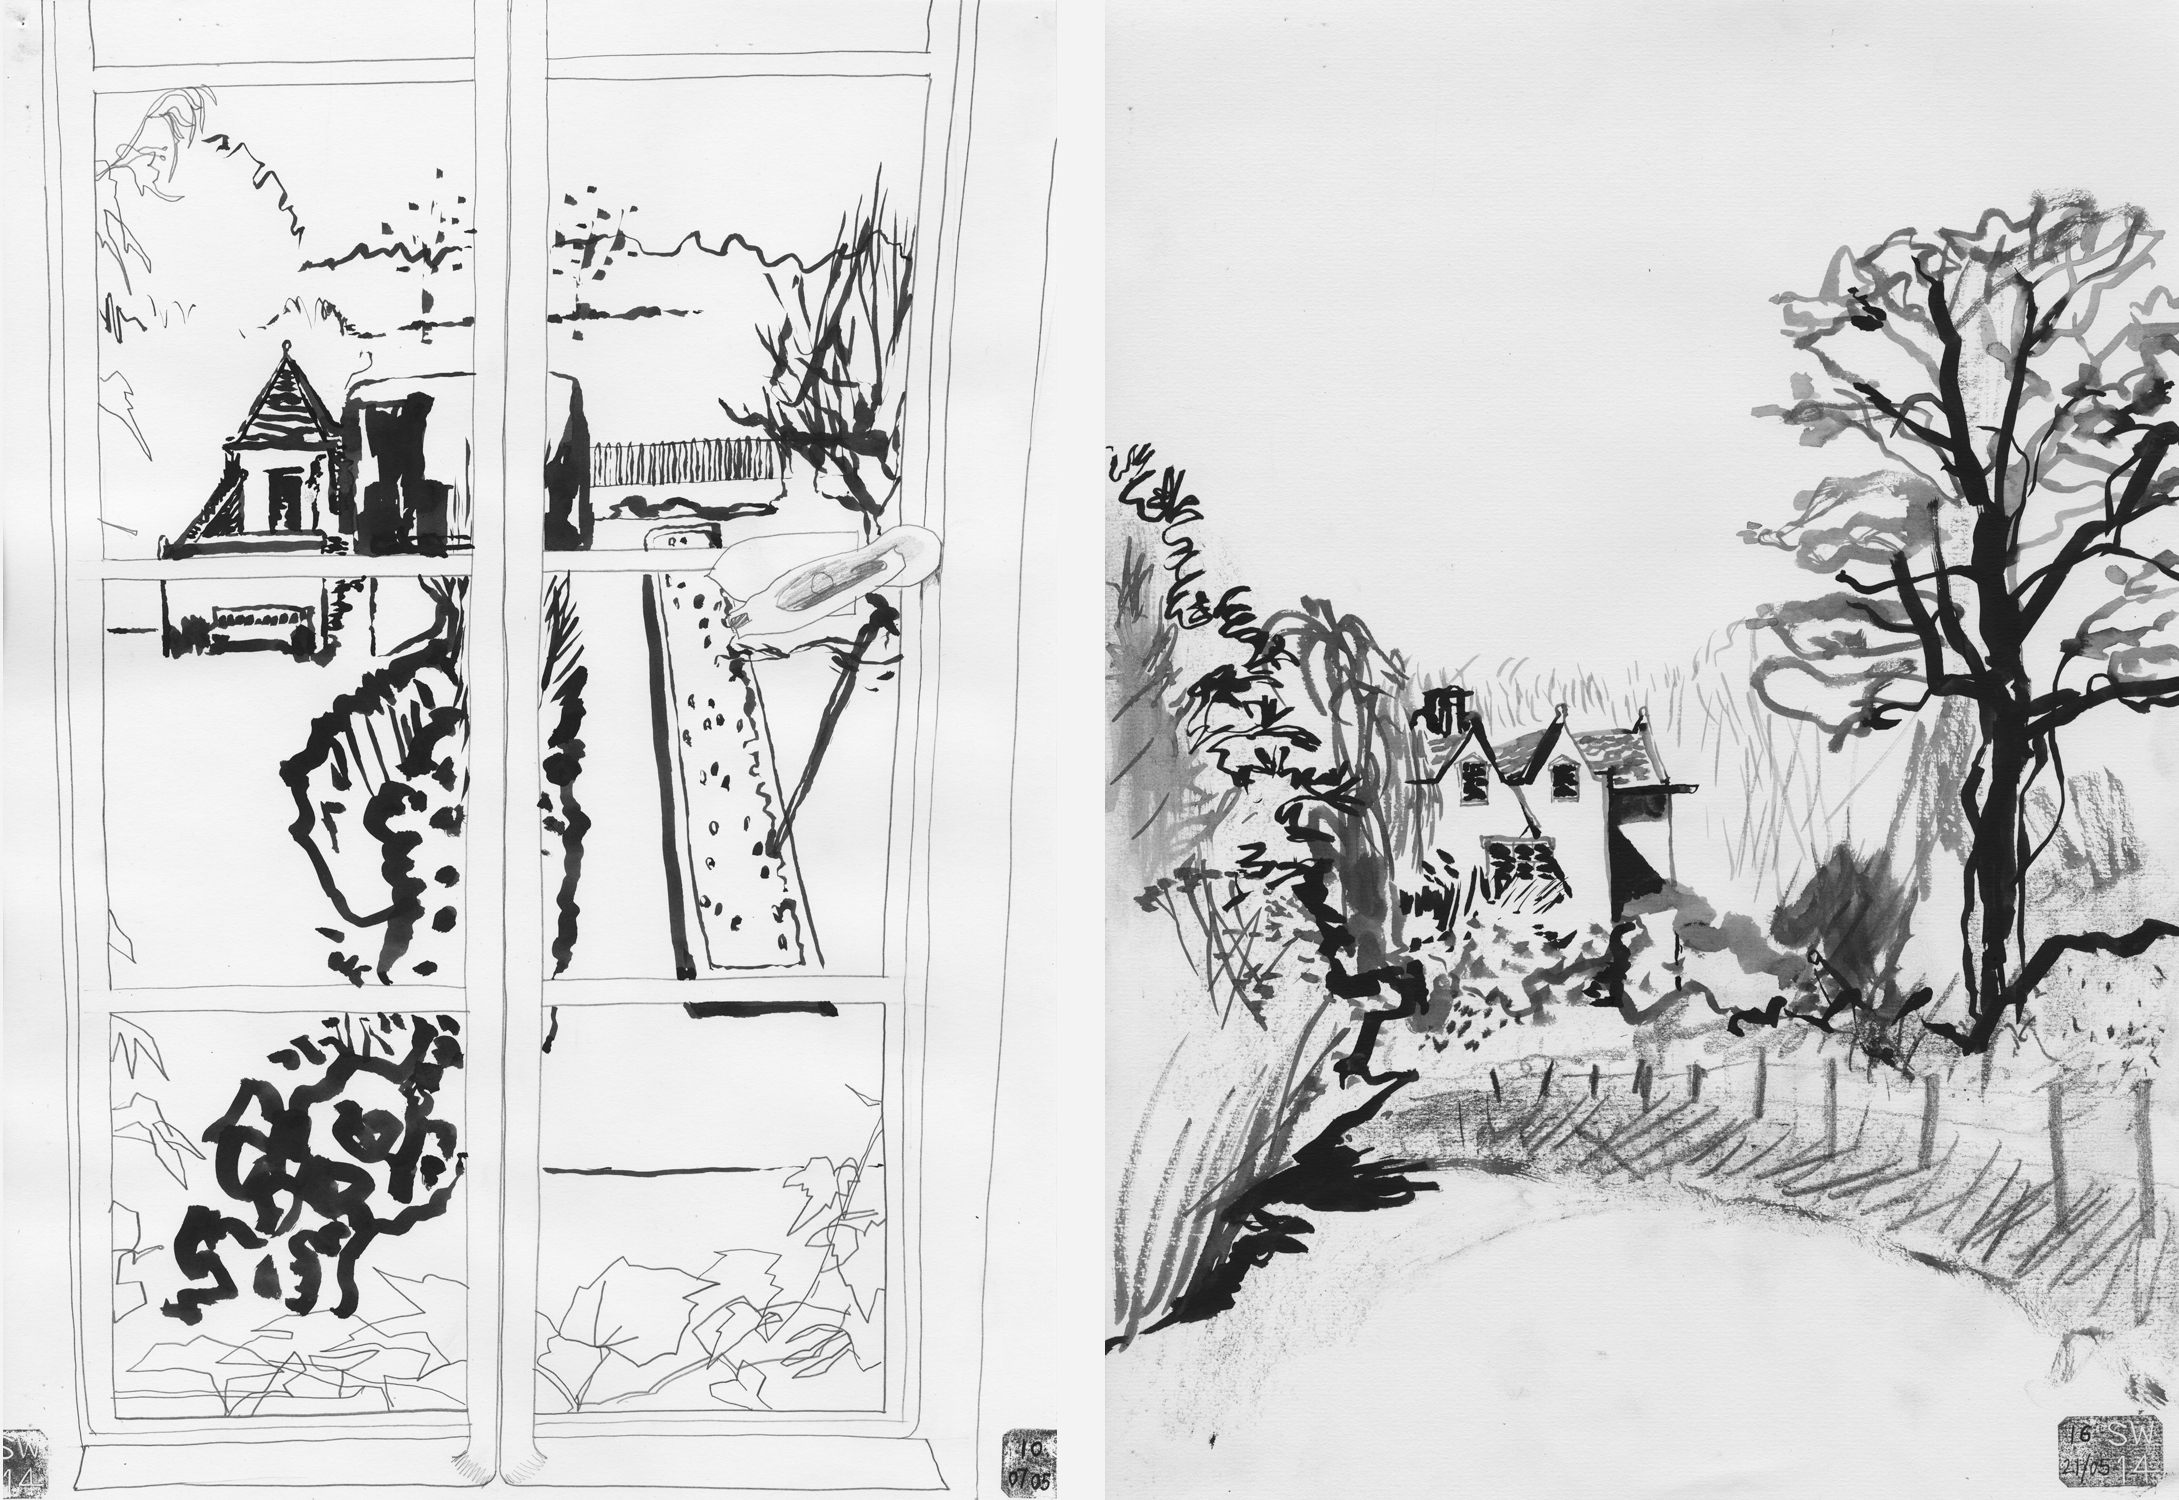 My drawing from one of the attic windows and today's drawing of the Manor from the lane that leads down to the River Thames.